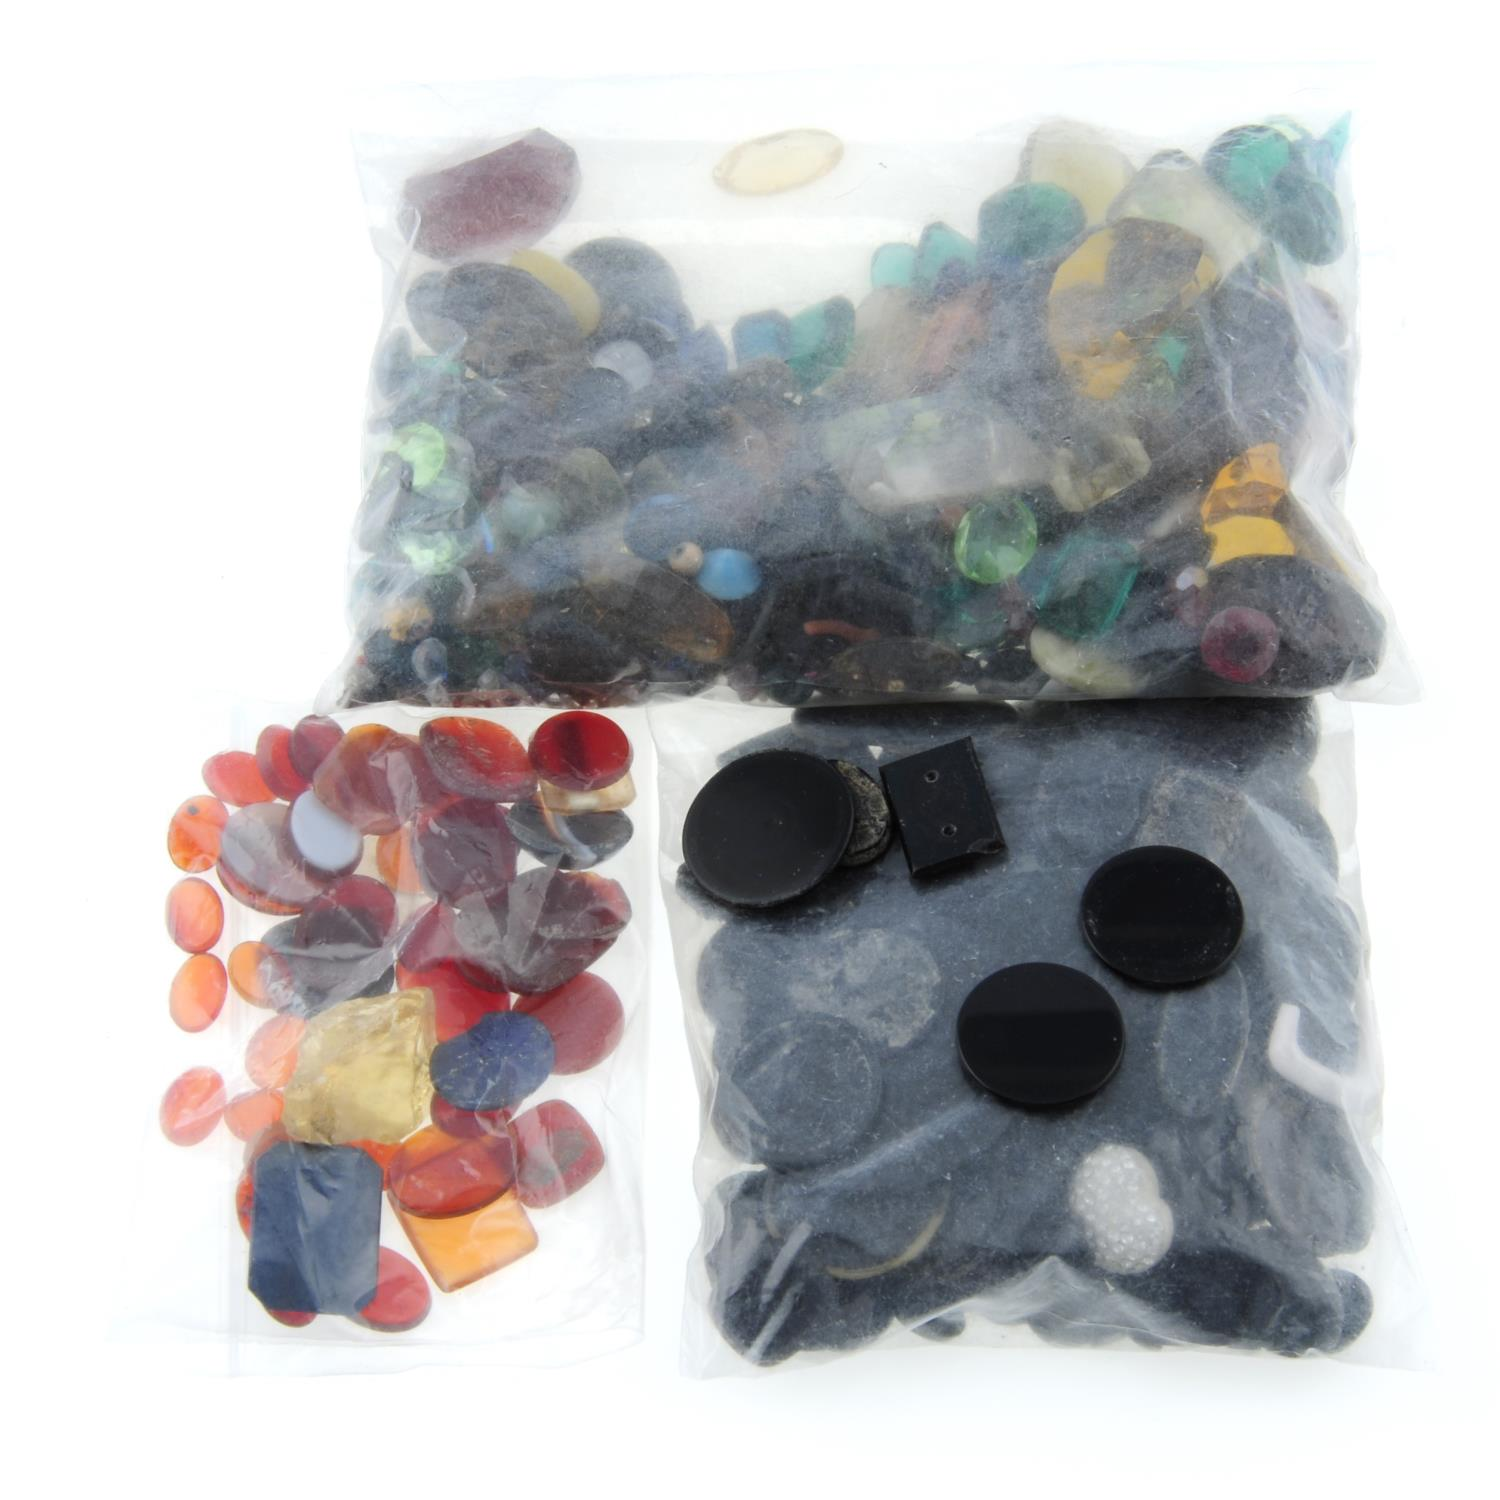 A selection of gemstones, weighing 1.1kgs, to include quartz, topaz, bloodstone and others. - Image 3 of 3